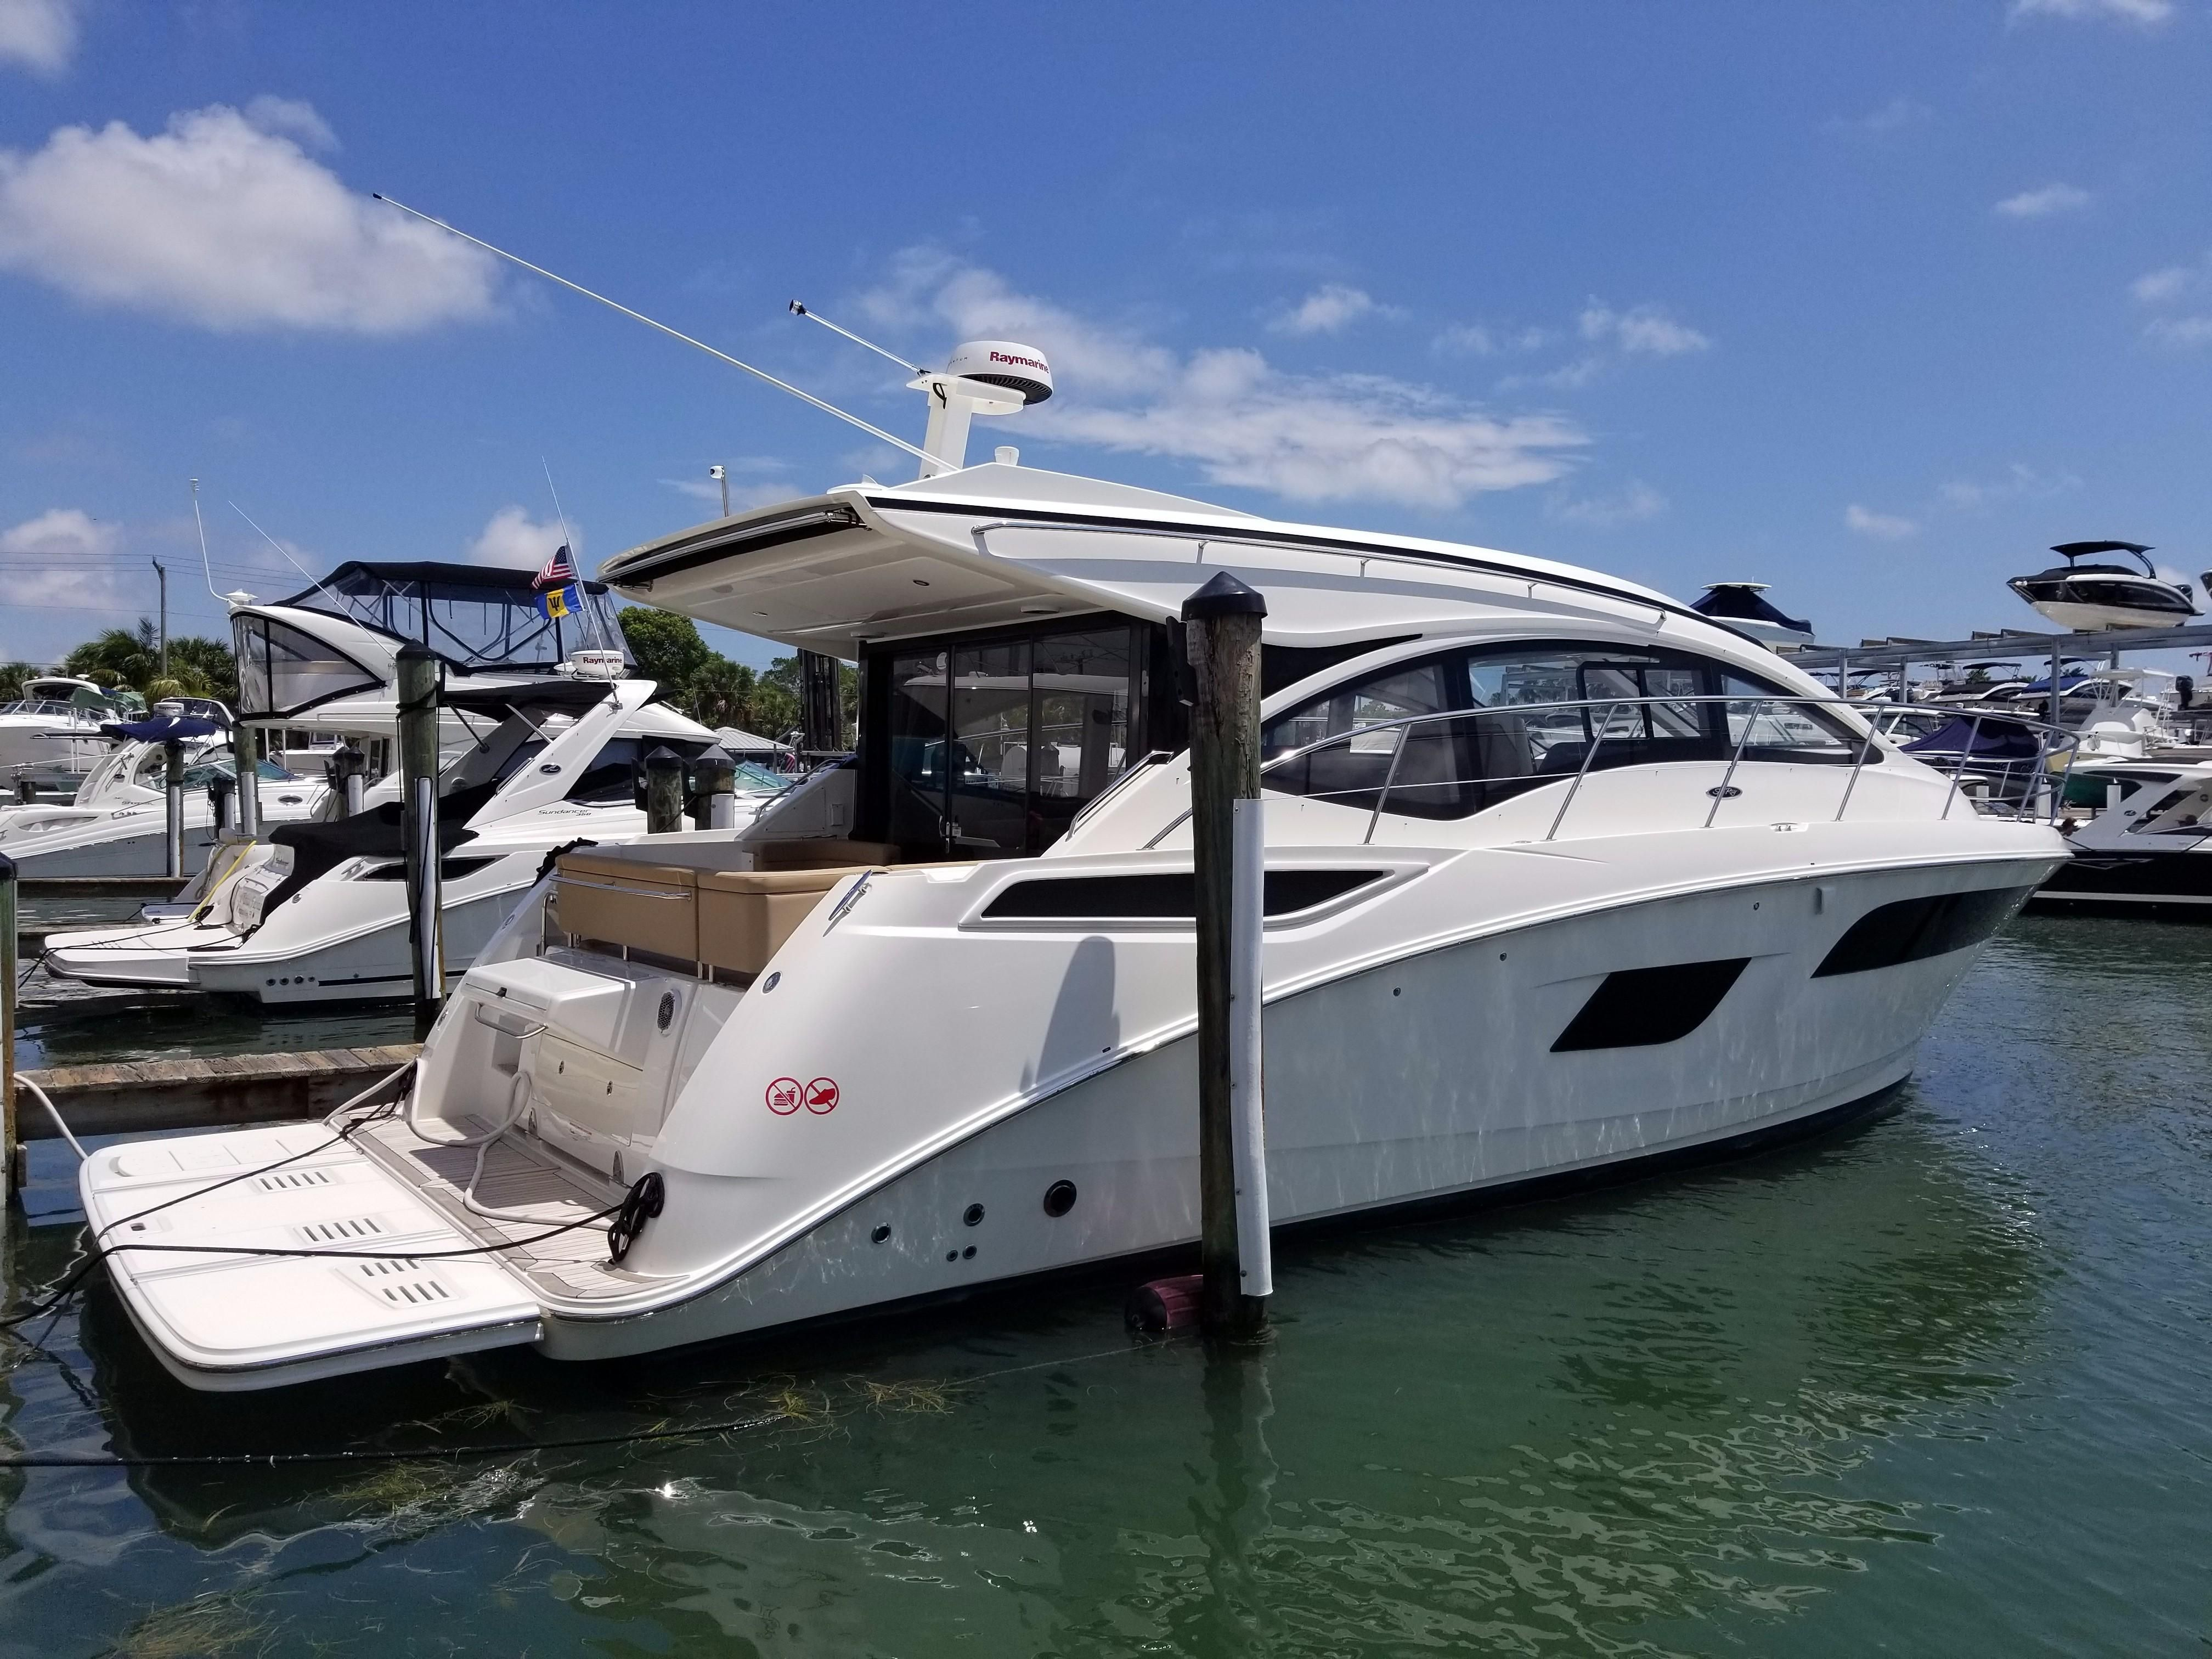 2017 sea ray sundancer 400 power boat for sale www for Sea ray motor yacht for sale